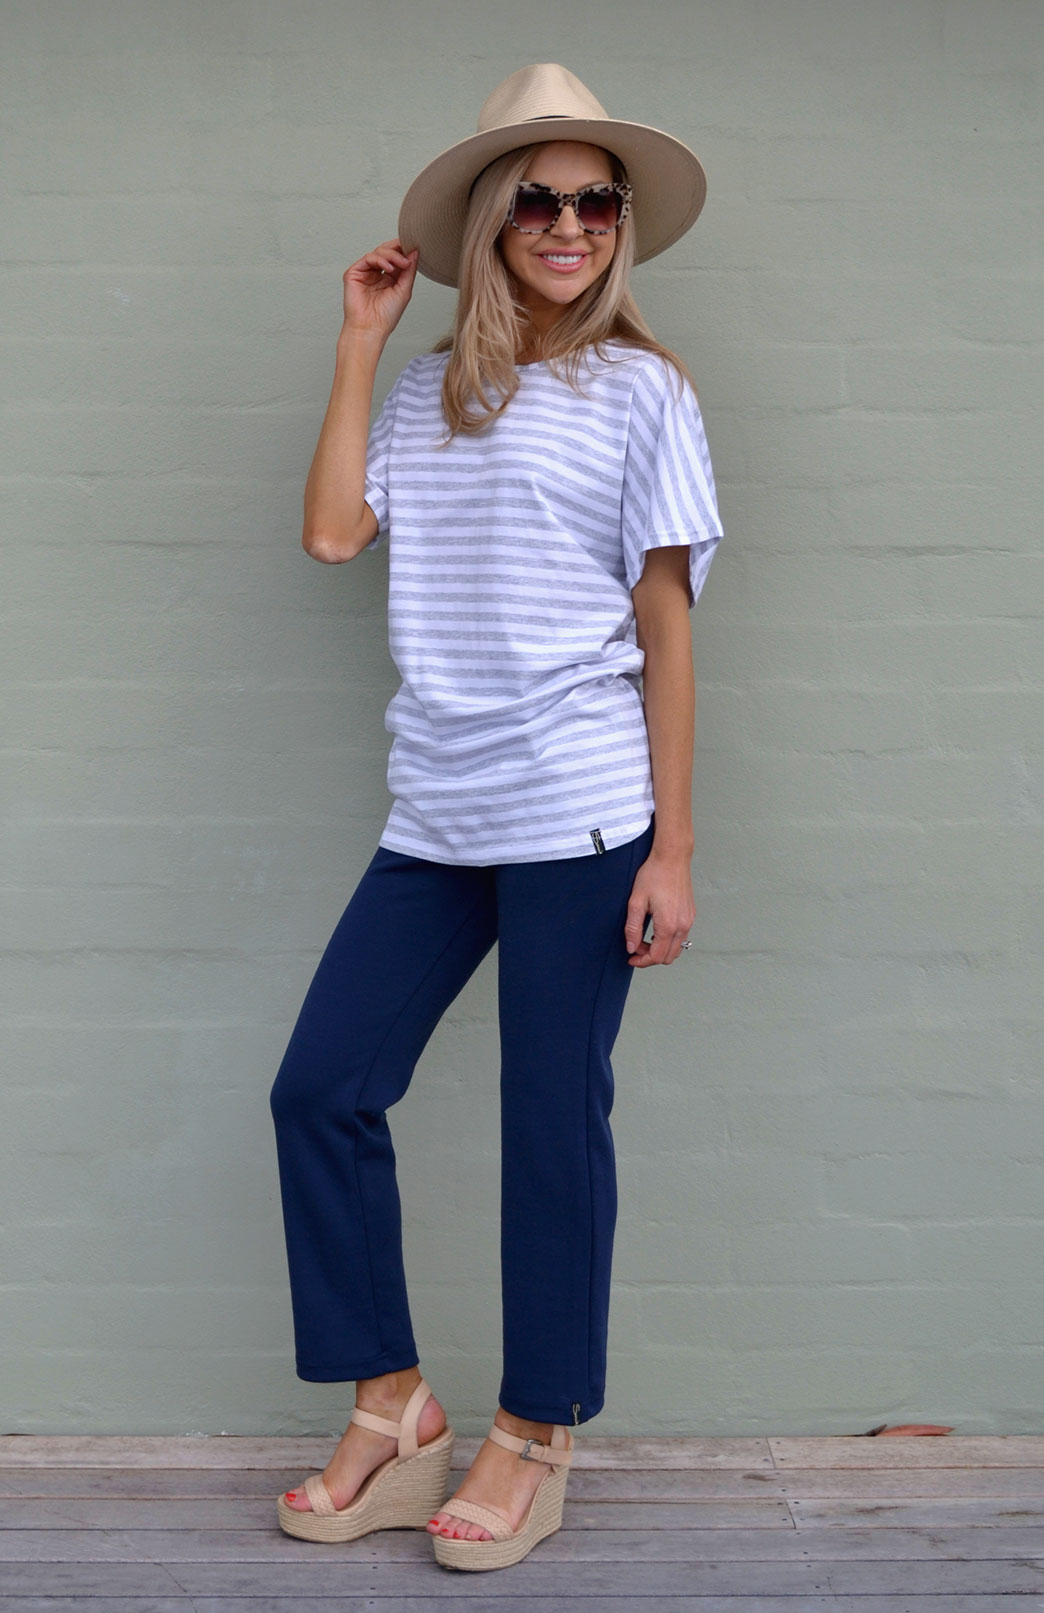 Loose T-Shirt - Cotton - Women's Striped Cotton Loose T-Shirt - Smitten Merino Tasmania Australia